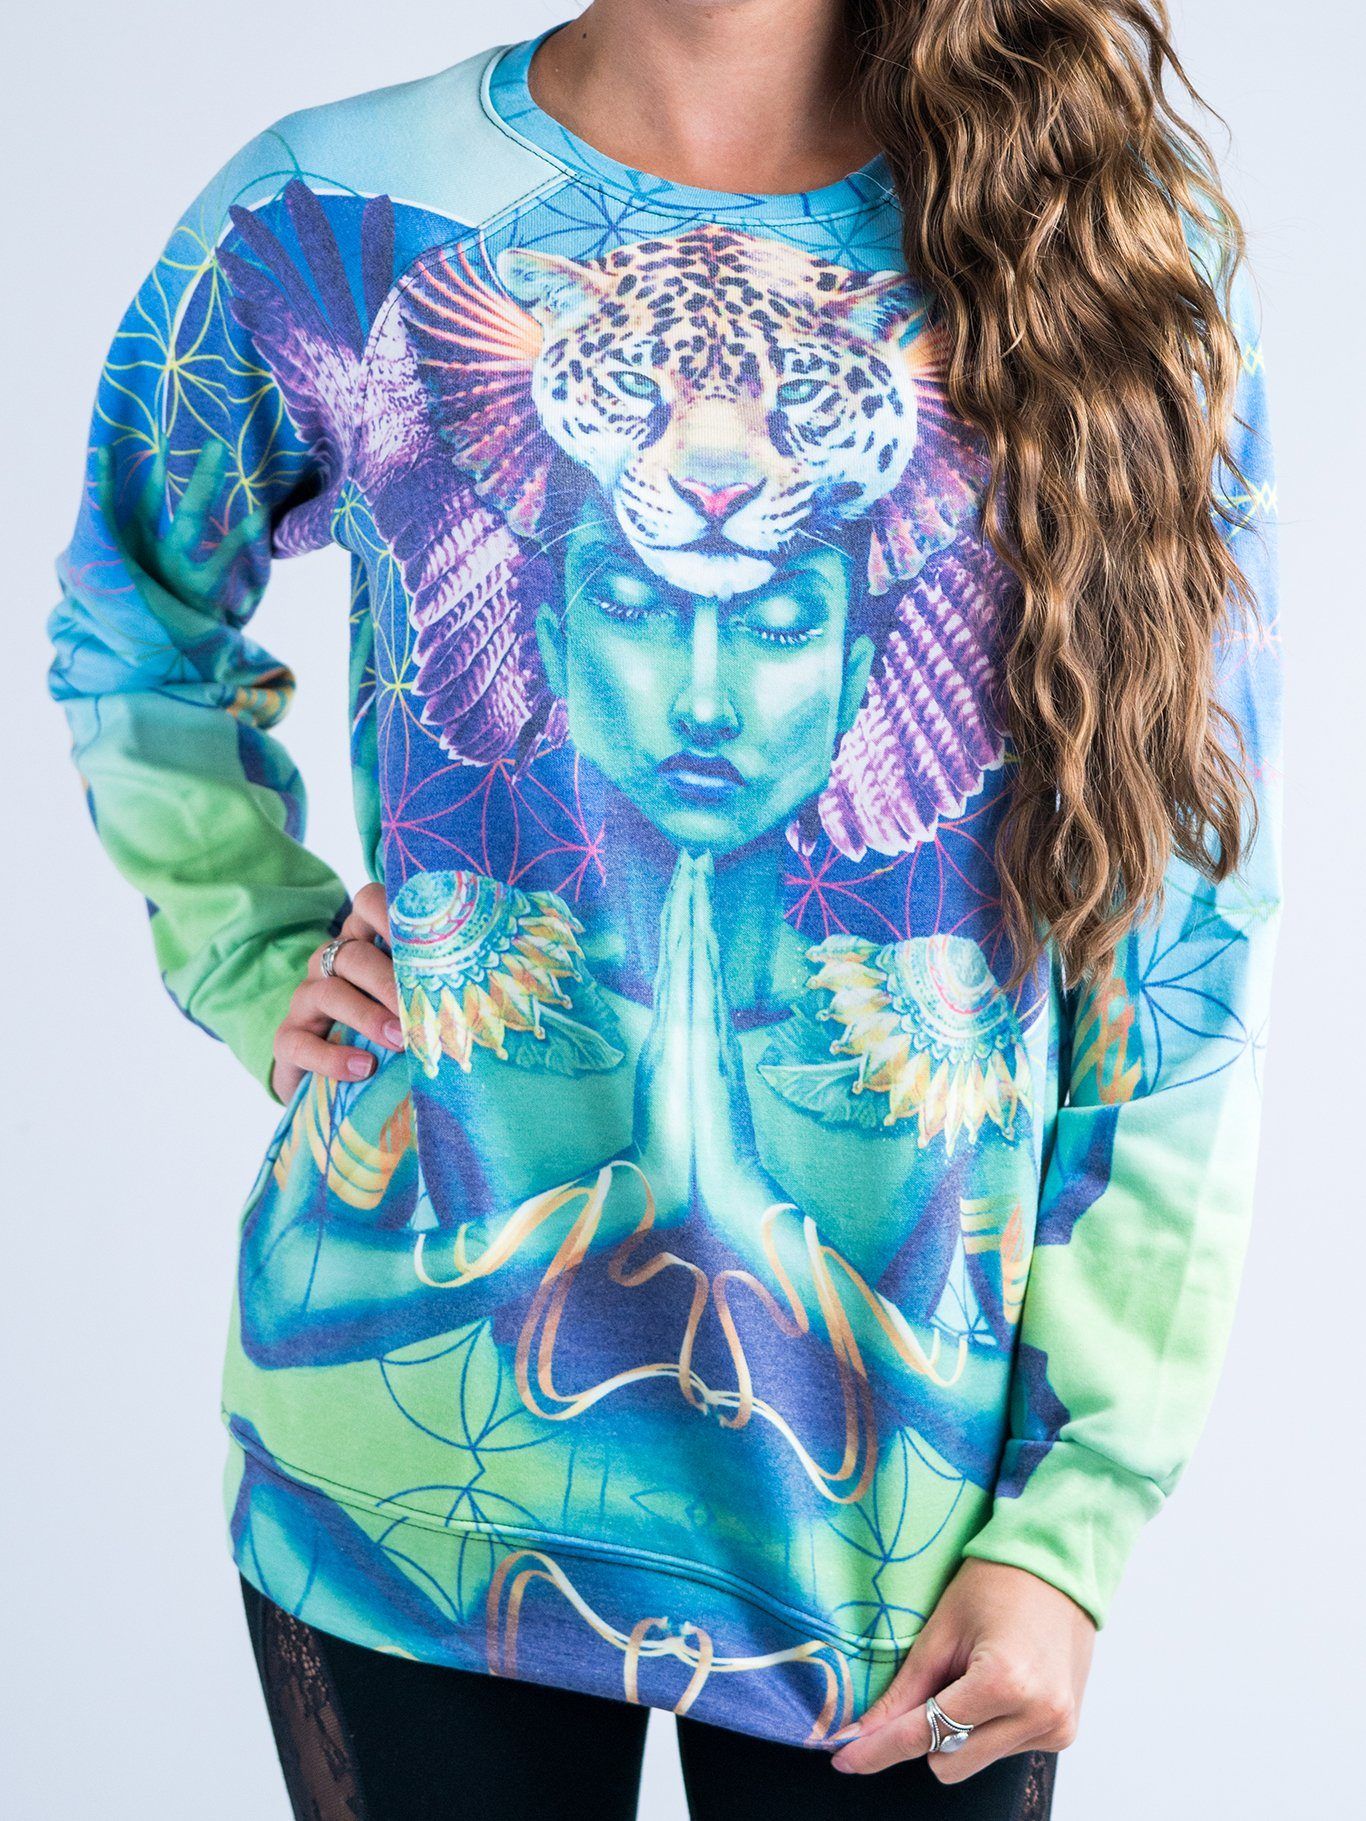 Power and Peace Vintage Sweatshirt Sweatshirt T6 XS Blue